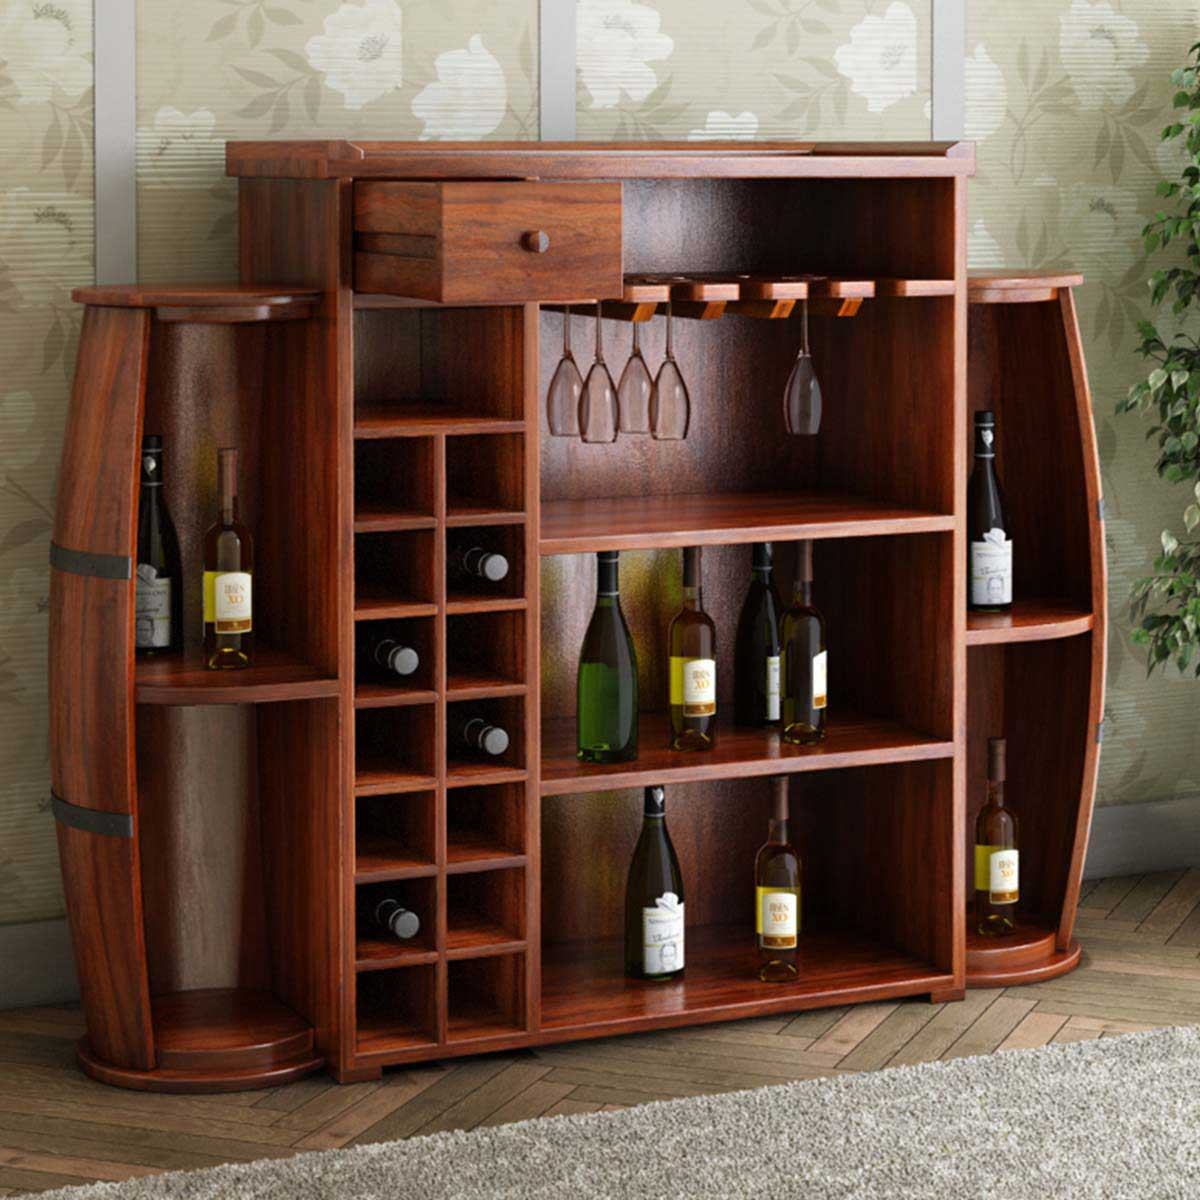 Home liquor cabinet - Bar cabinets for home ...